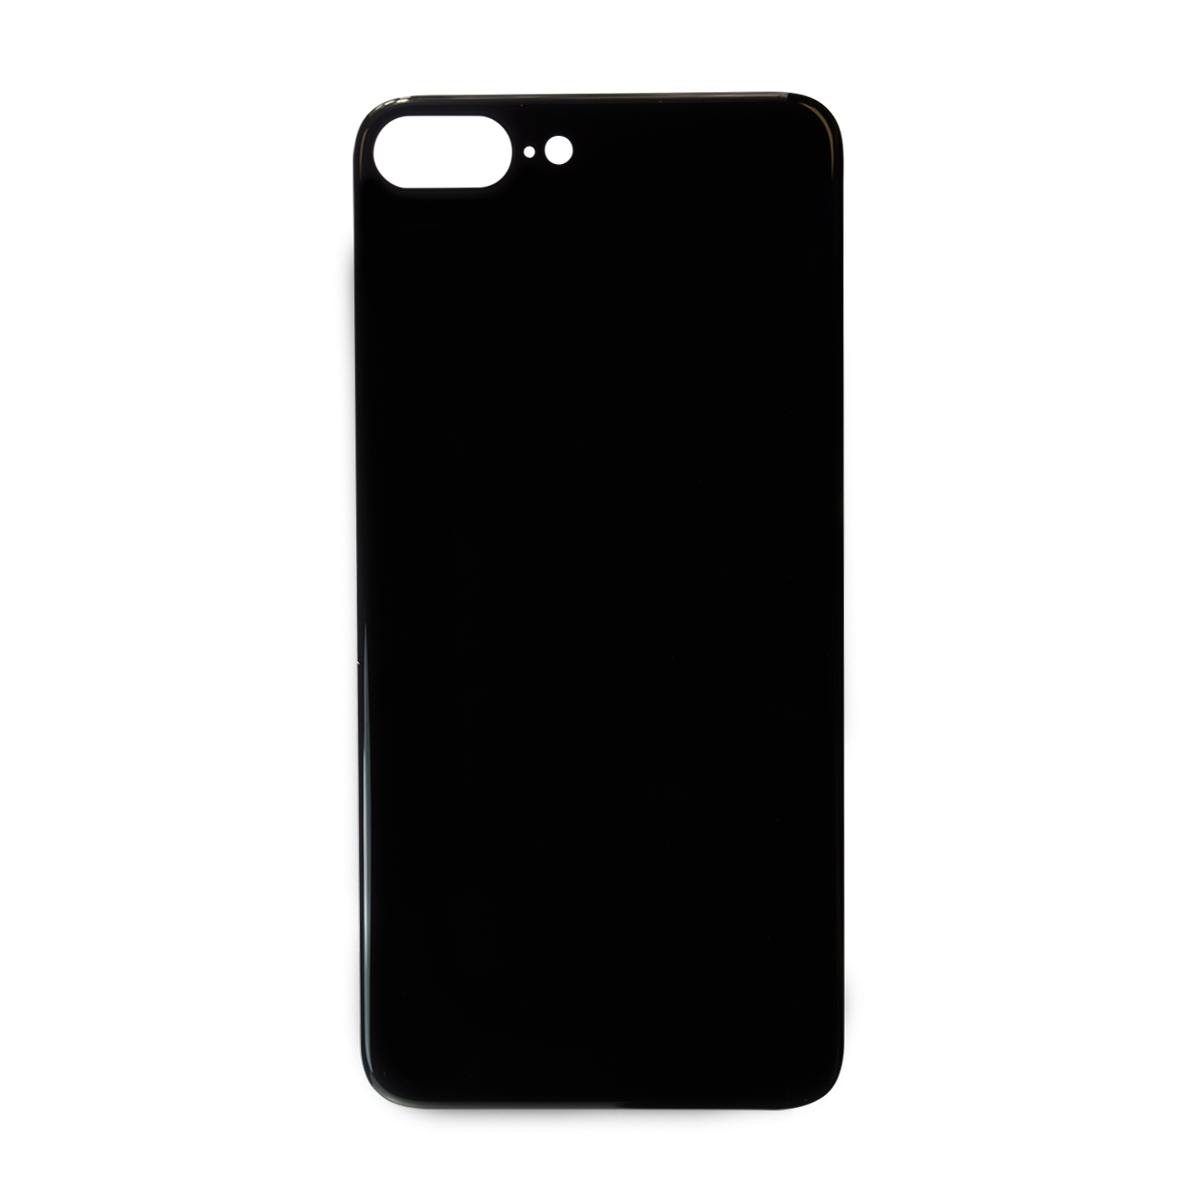 iPhone_8_Plus_Rear_Back_Glass_with_Big_Camera_Hole_Black_SBDOSVOLI1P9.png